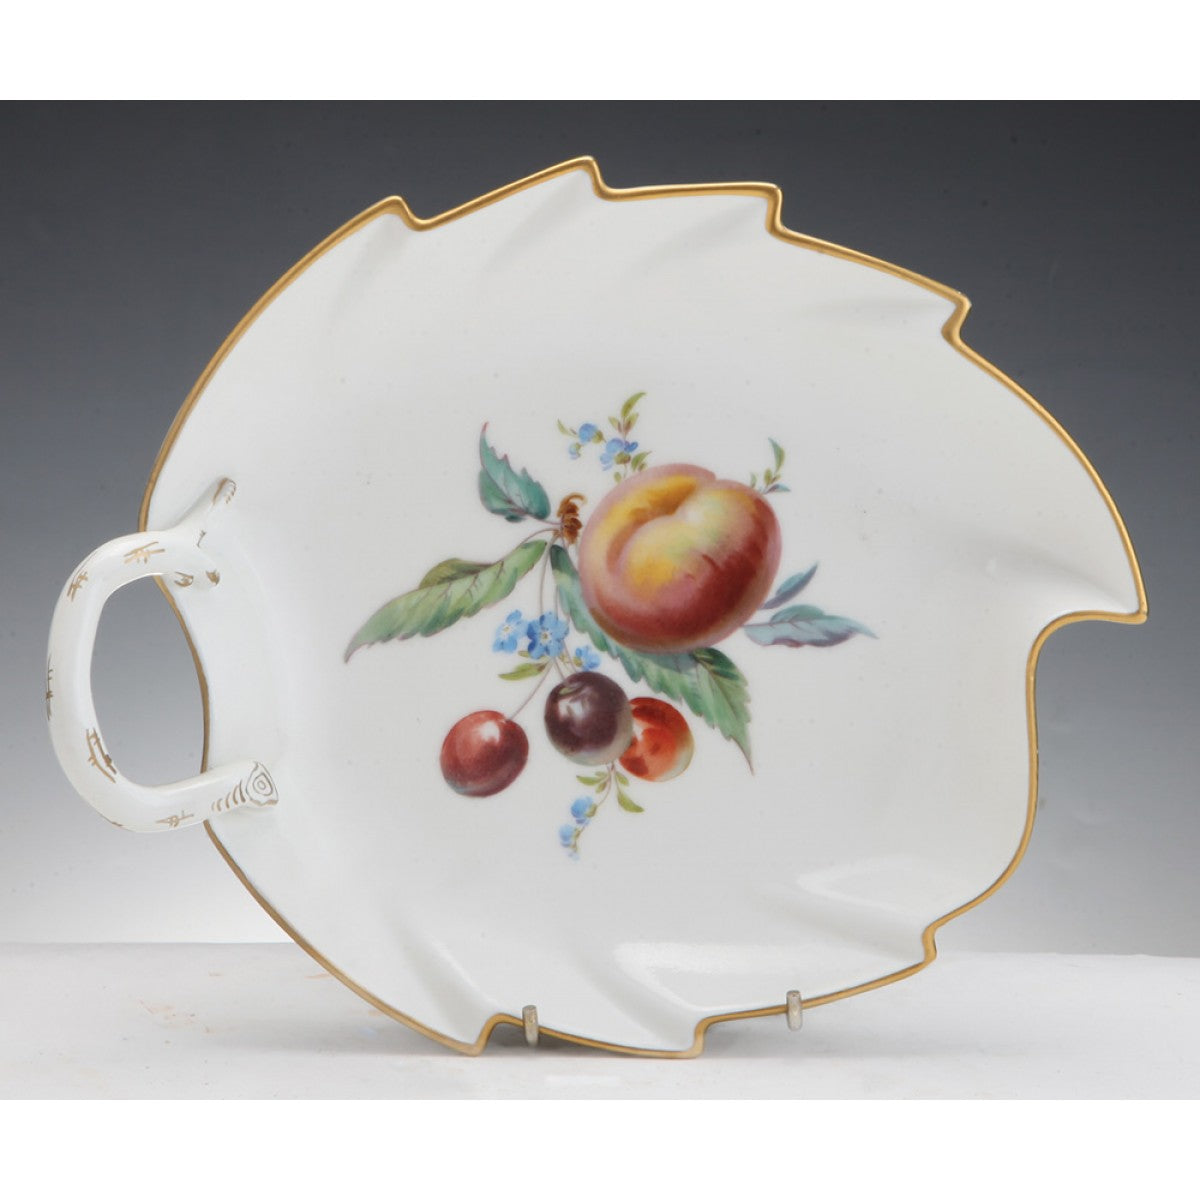 Meissen Porcelain Leaf Shaped Bowl